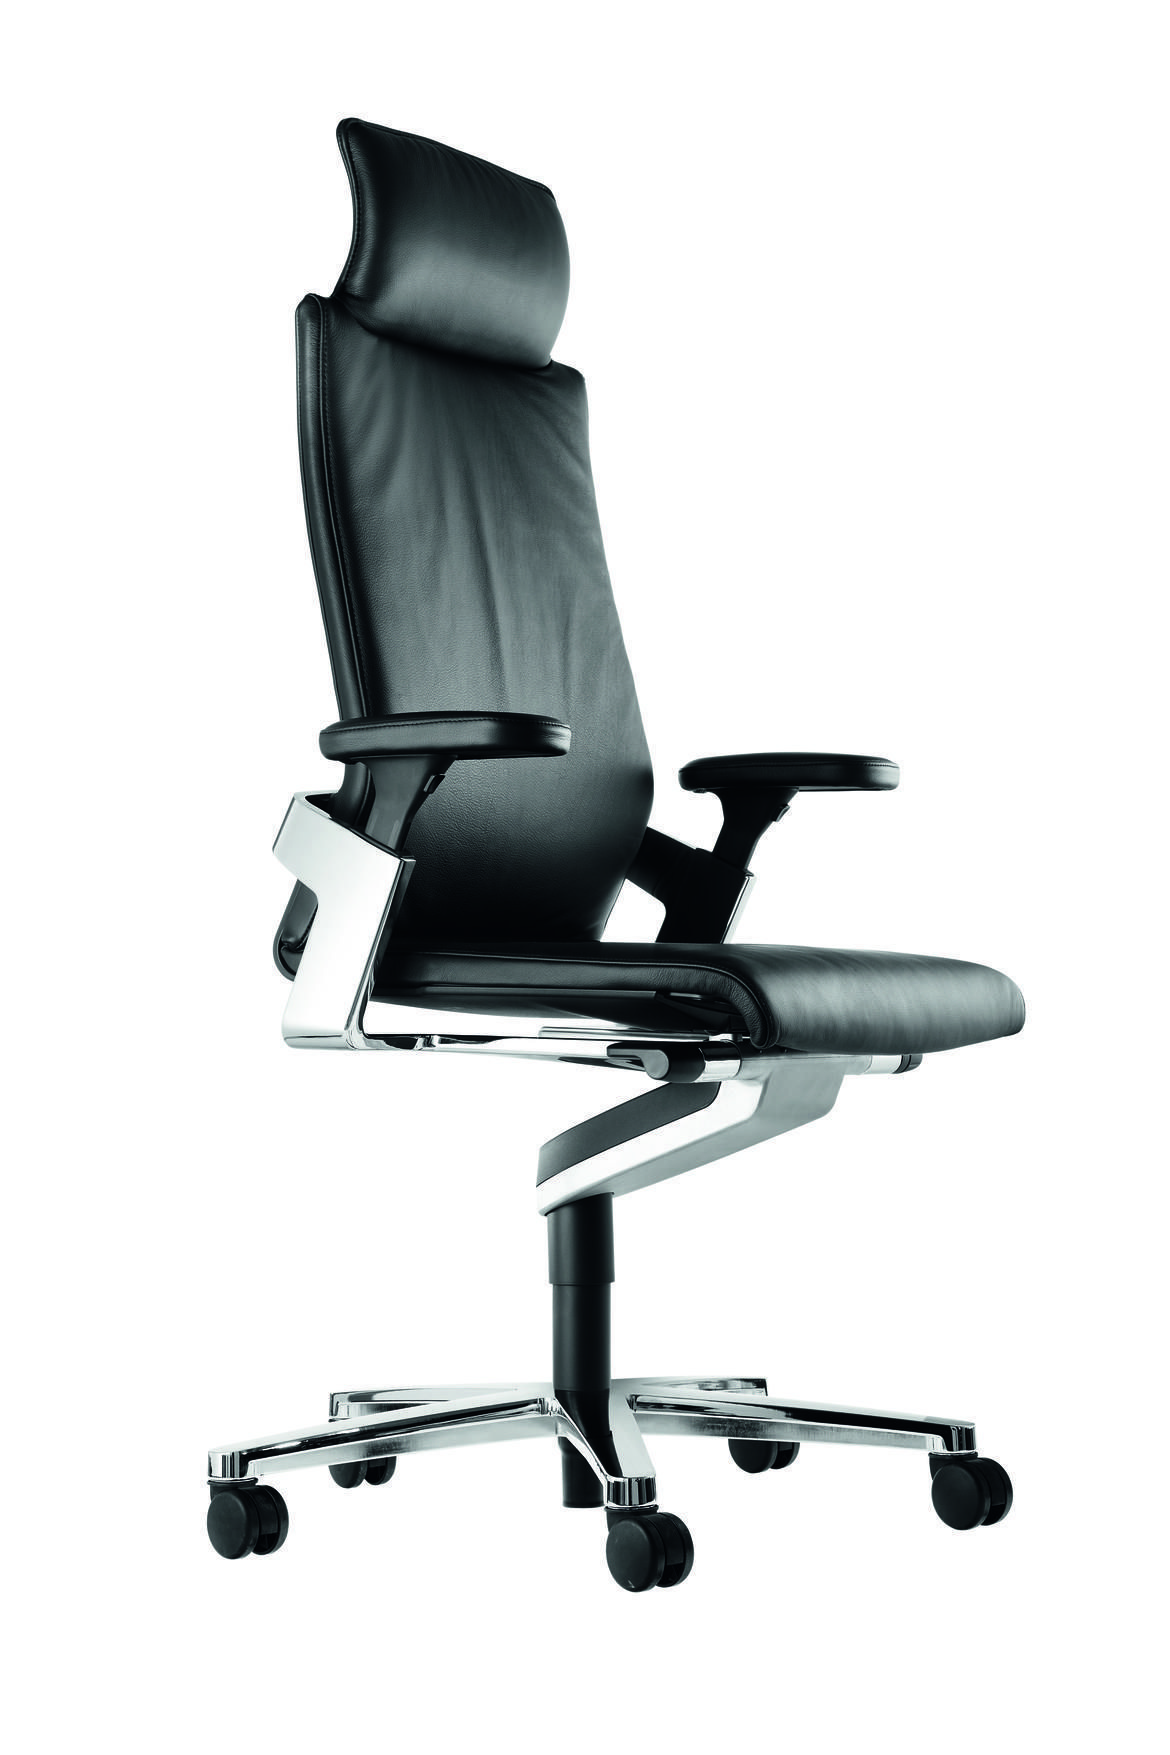 On Office Chair With Trimension Three Dimensional Synchro Adjusted Dynamic Seating Design Wiege Office Chair Ergonomic Office Chair Antique Wooden Chairs